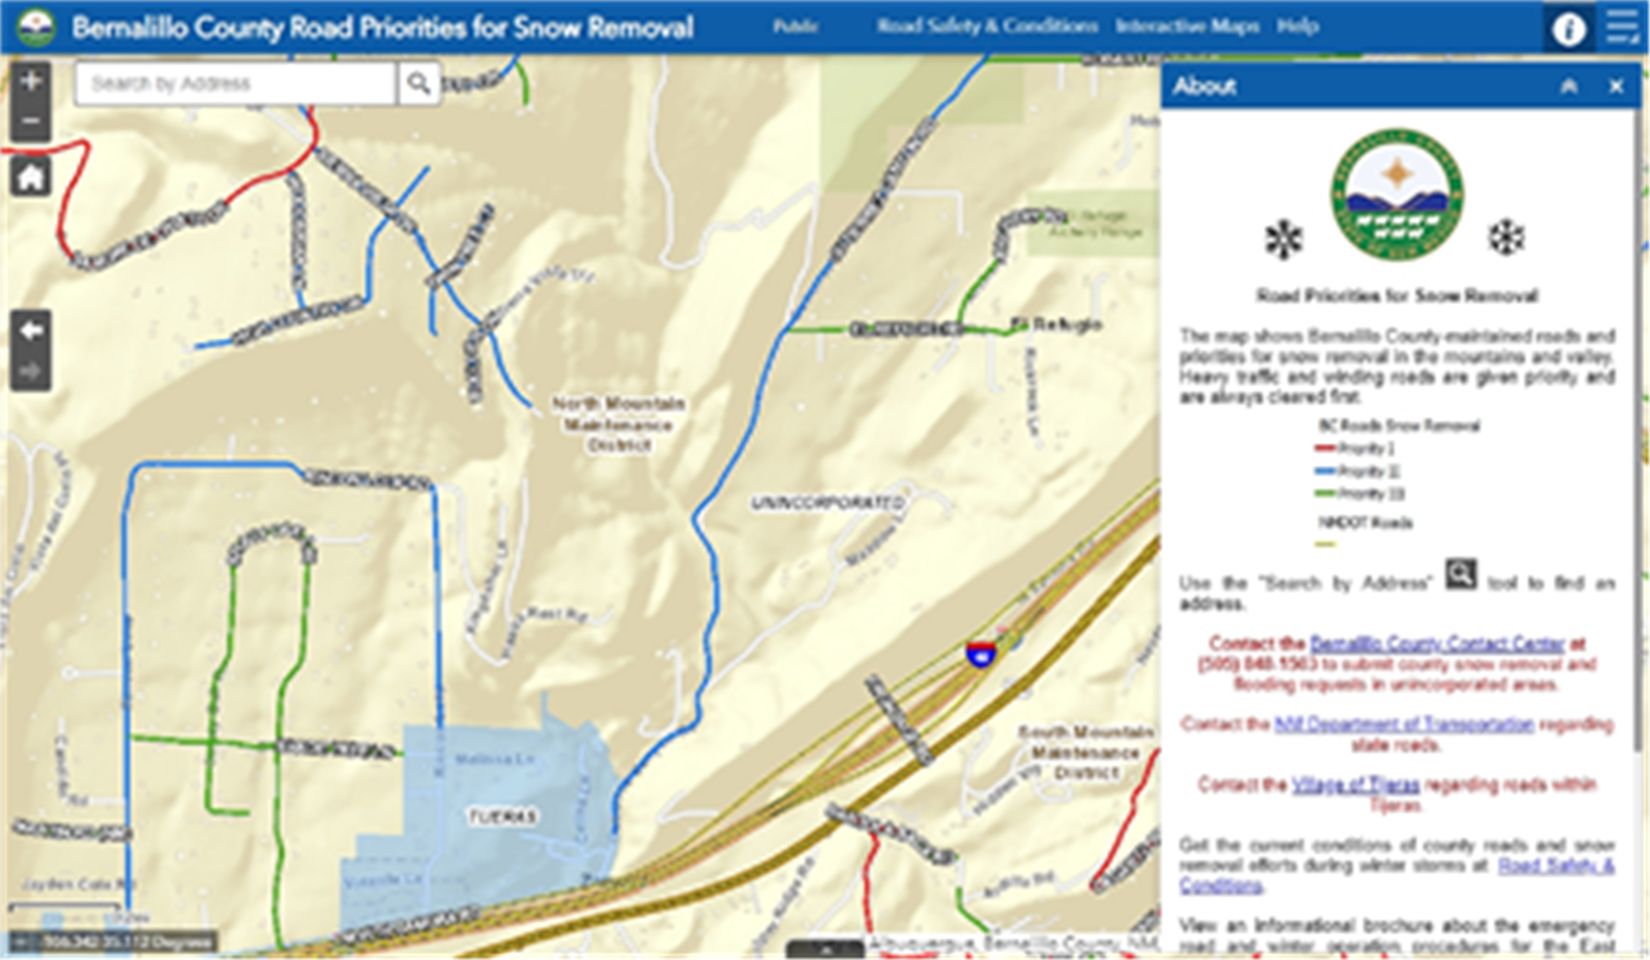 Map illustrating snow removal